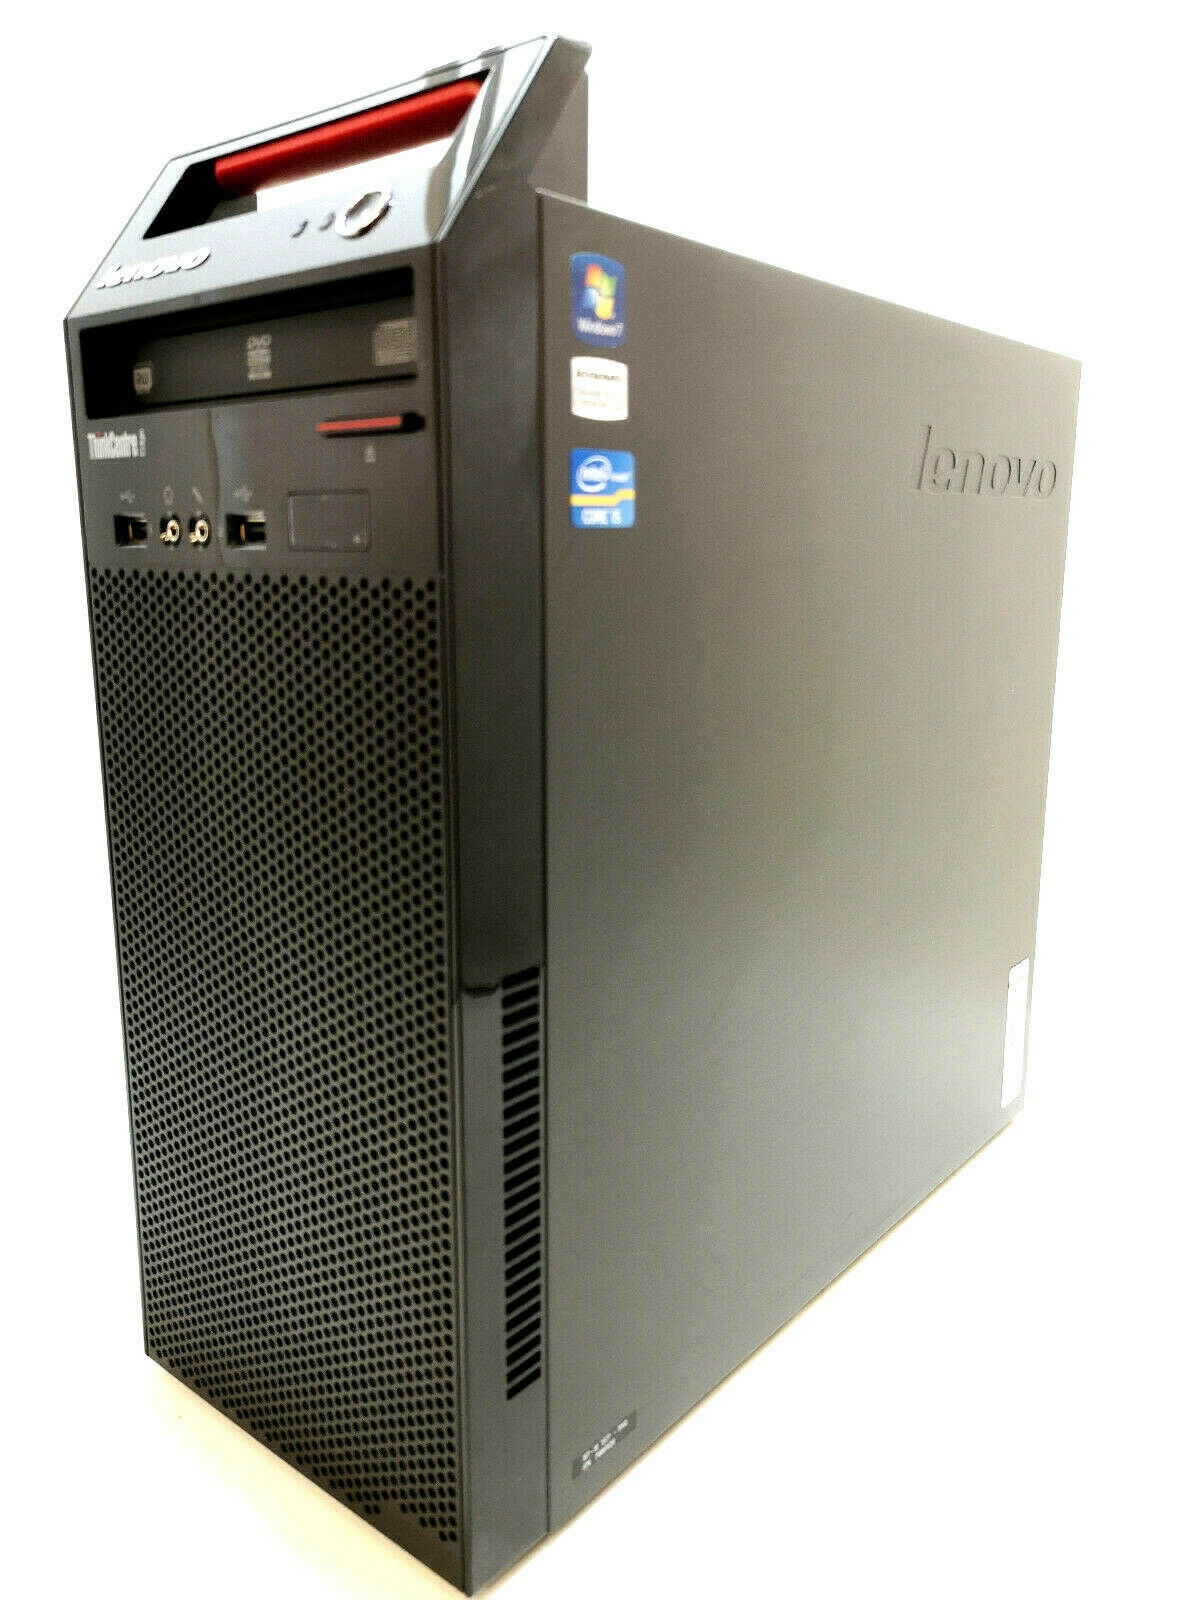 Lenovo ThinkCentre Edge 71 No 4